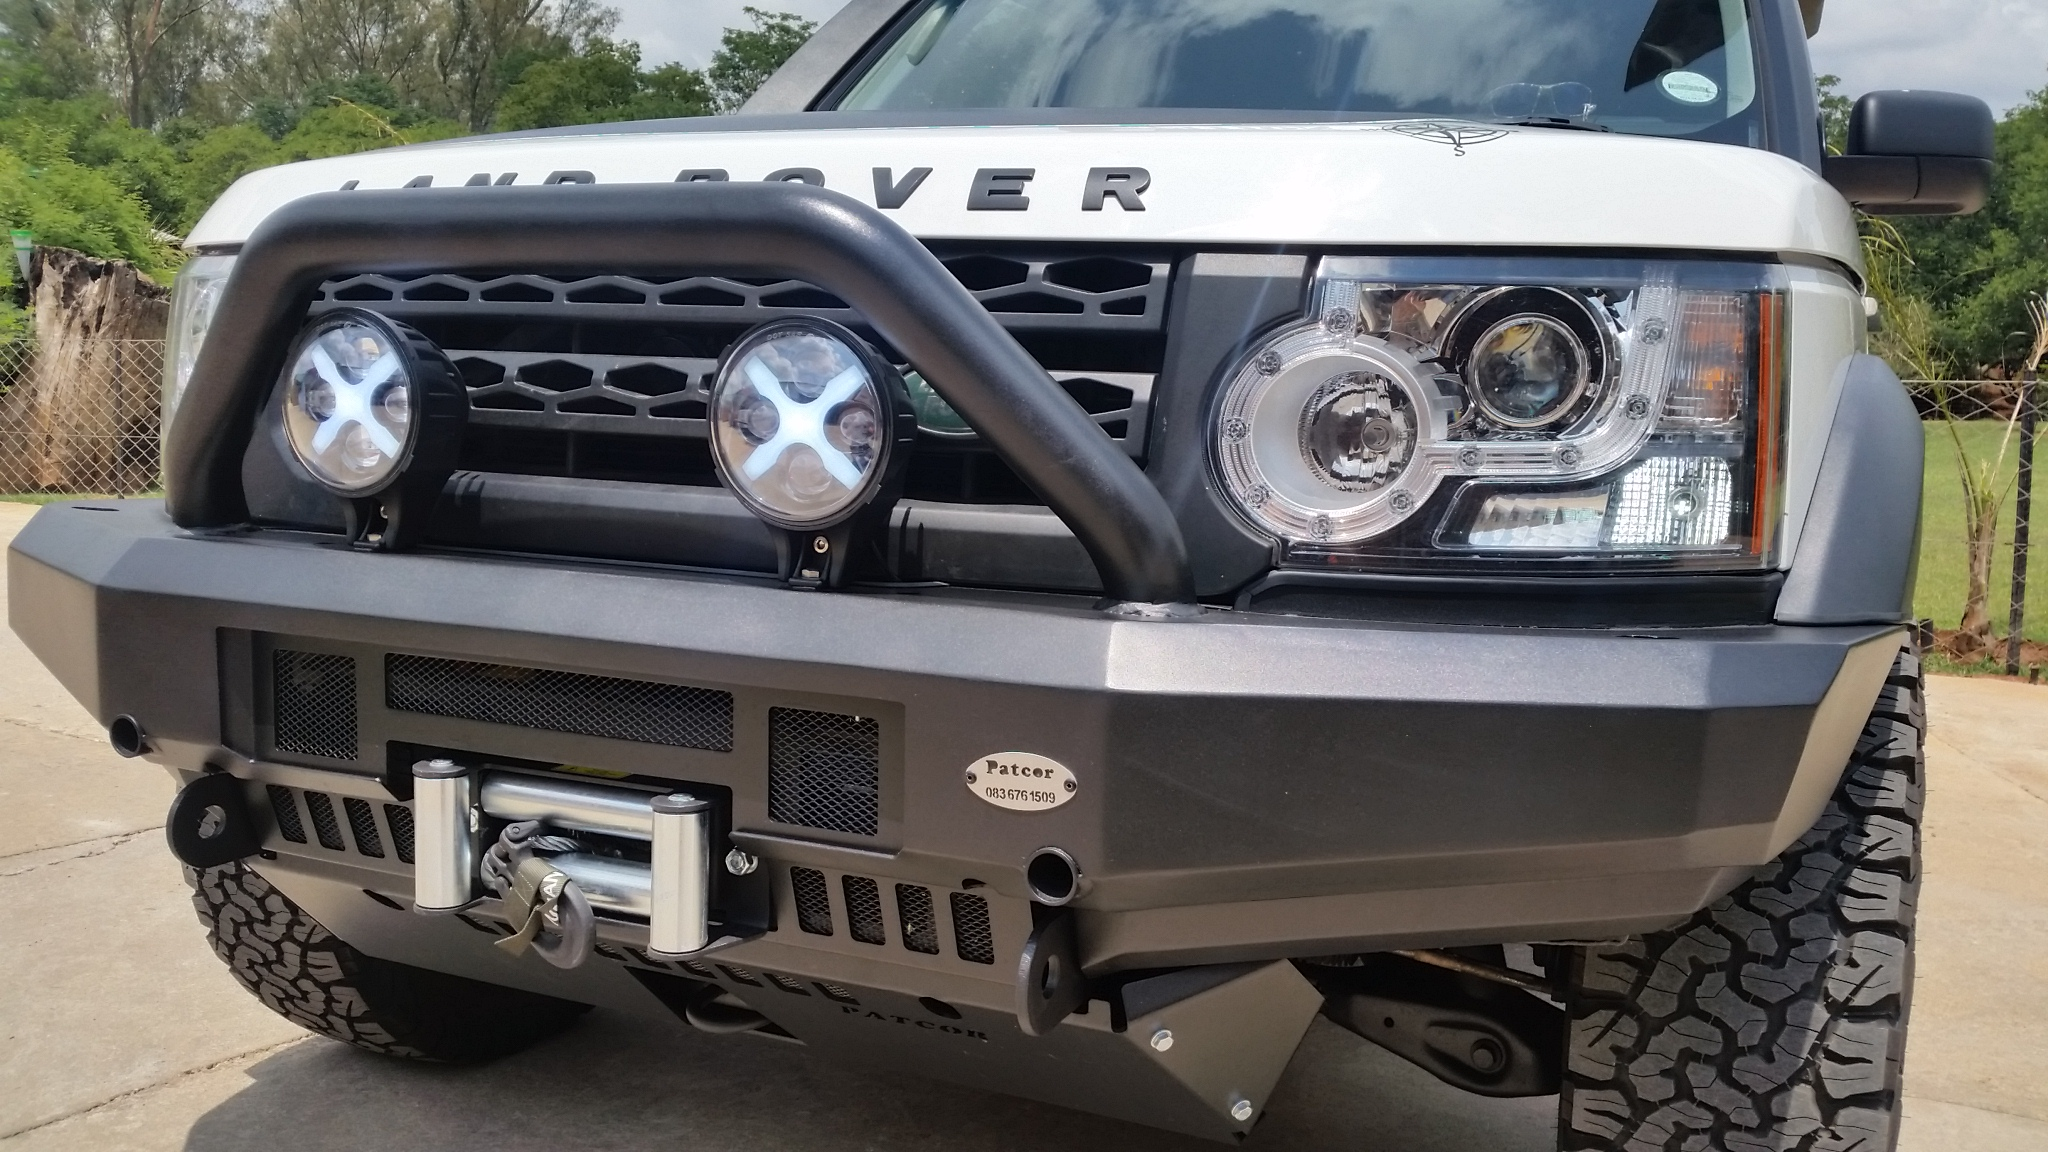 Lift Kits For Jeeps >> Replacement Front Bumper - Patcor Offroad